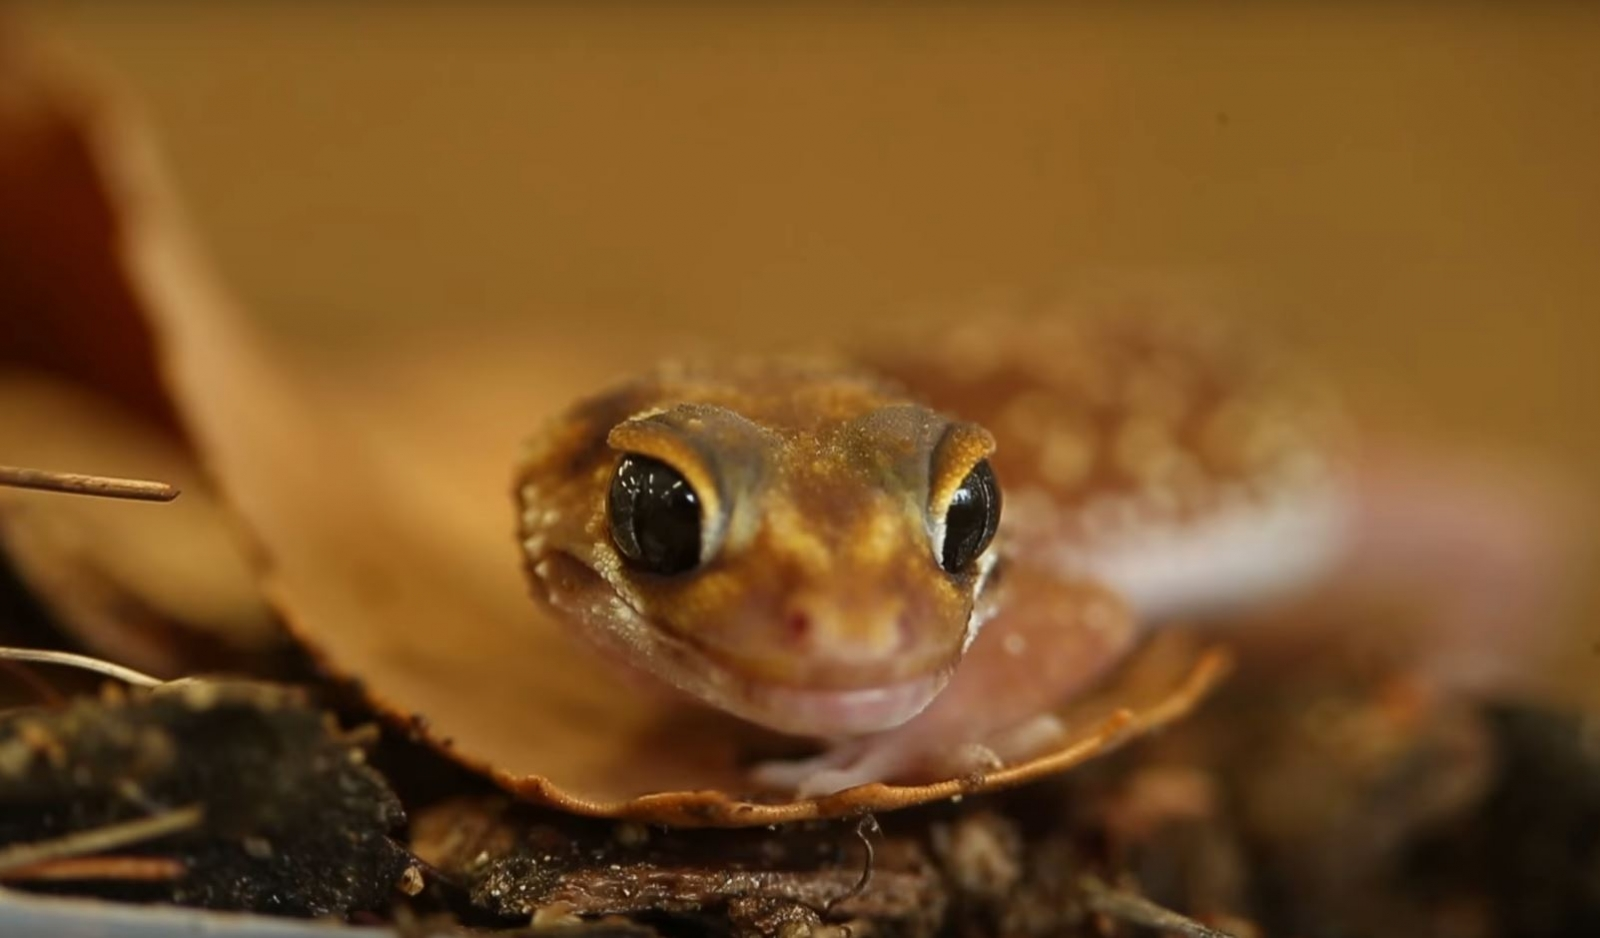 Australia: Climate event 35 million years ago wiped out geckoes